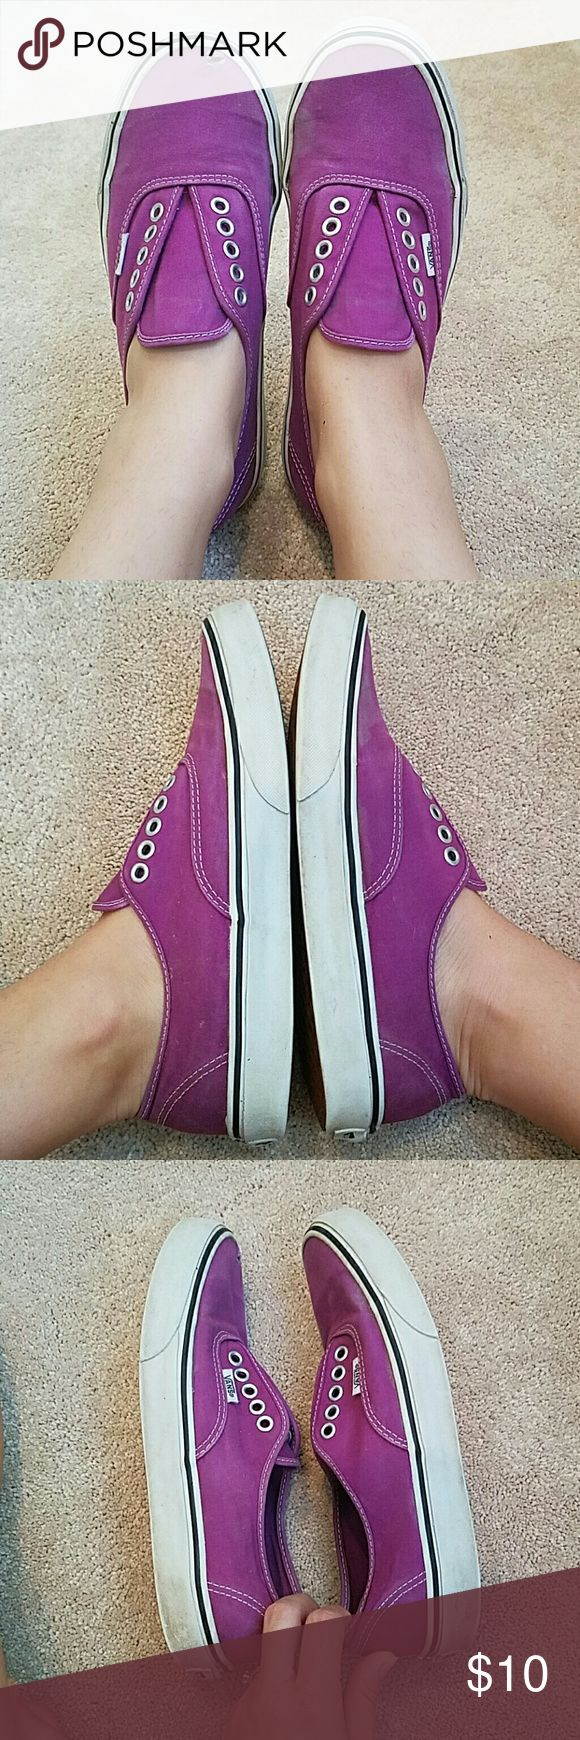 USED purple vans Still life in these purple vans. Hole on left toe and in left heel where my dog chewed on it. Great boat shoes or quick slip ons! I have the laces even though I wore them without laces.  Men size 7 Women size 8.5 Vans Shoes